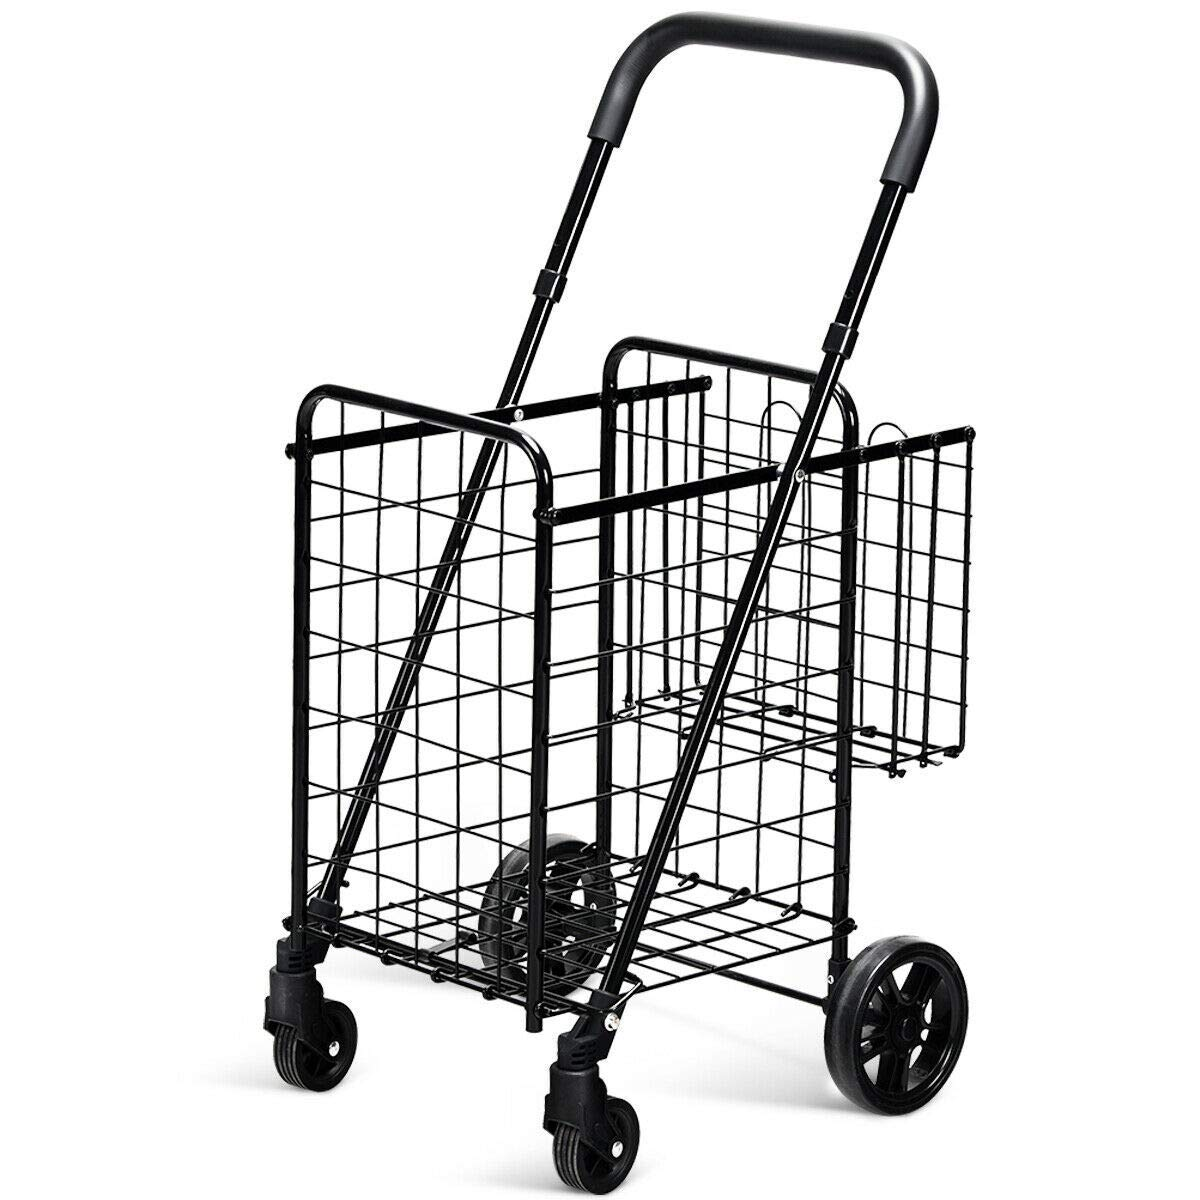 Goplus Folding Shopping Cart Double Basket Perfect for Grocery Laundry Book Luggage Travel with Swivel Wheels by Goplus